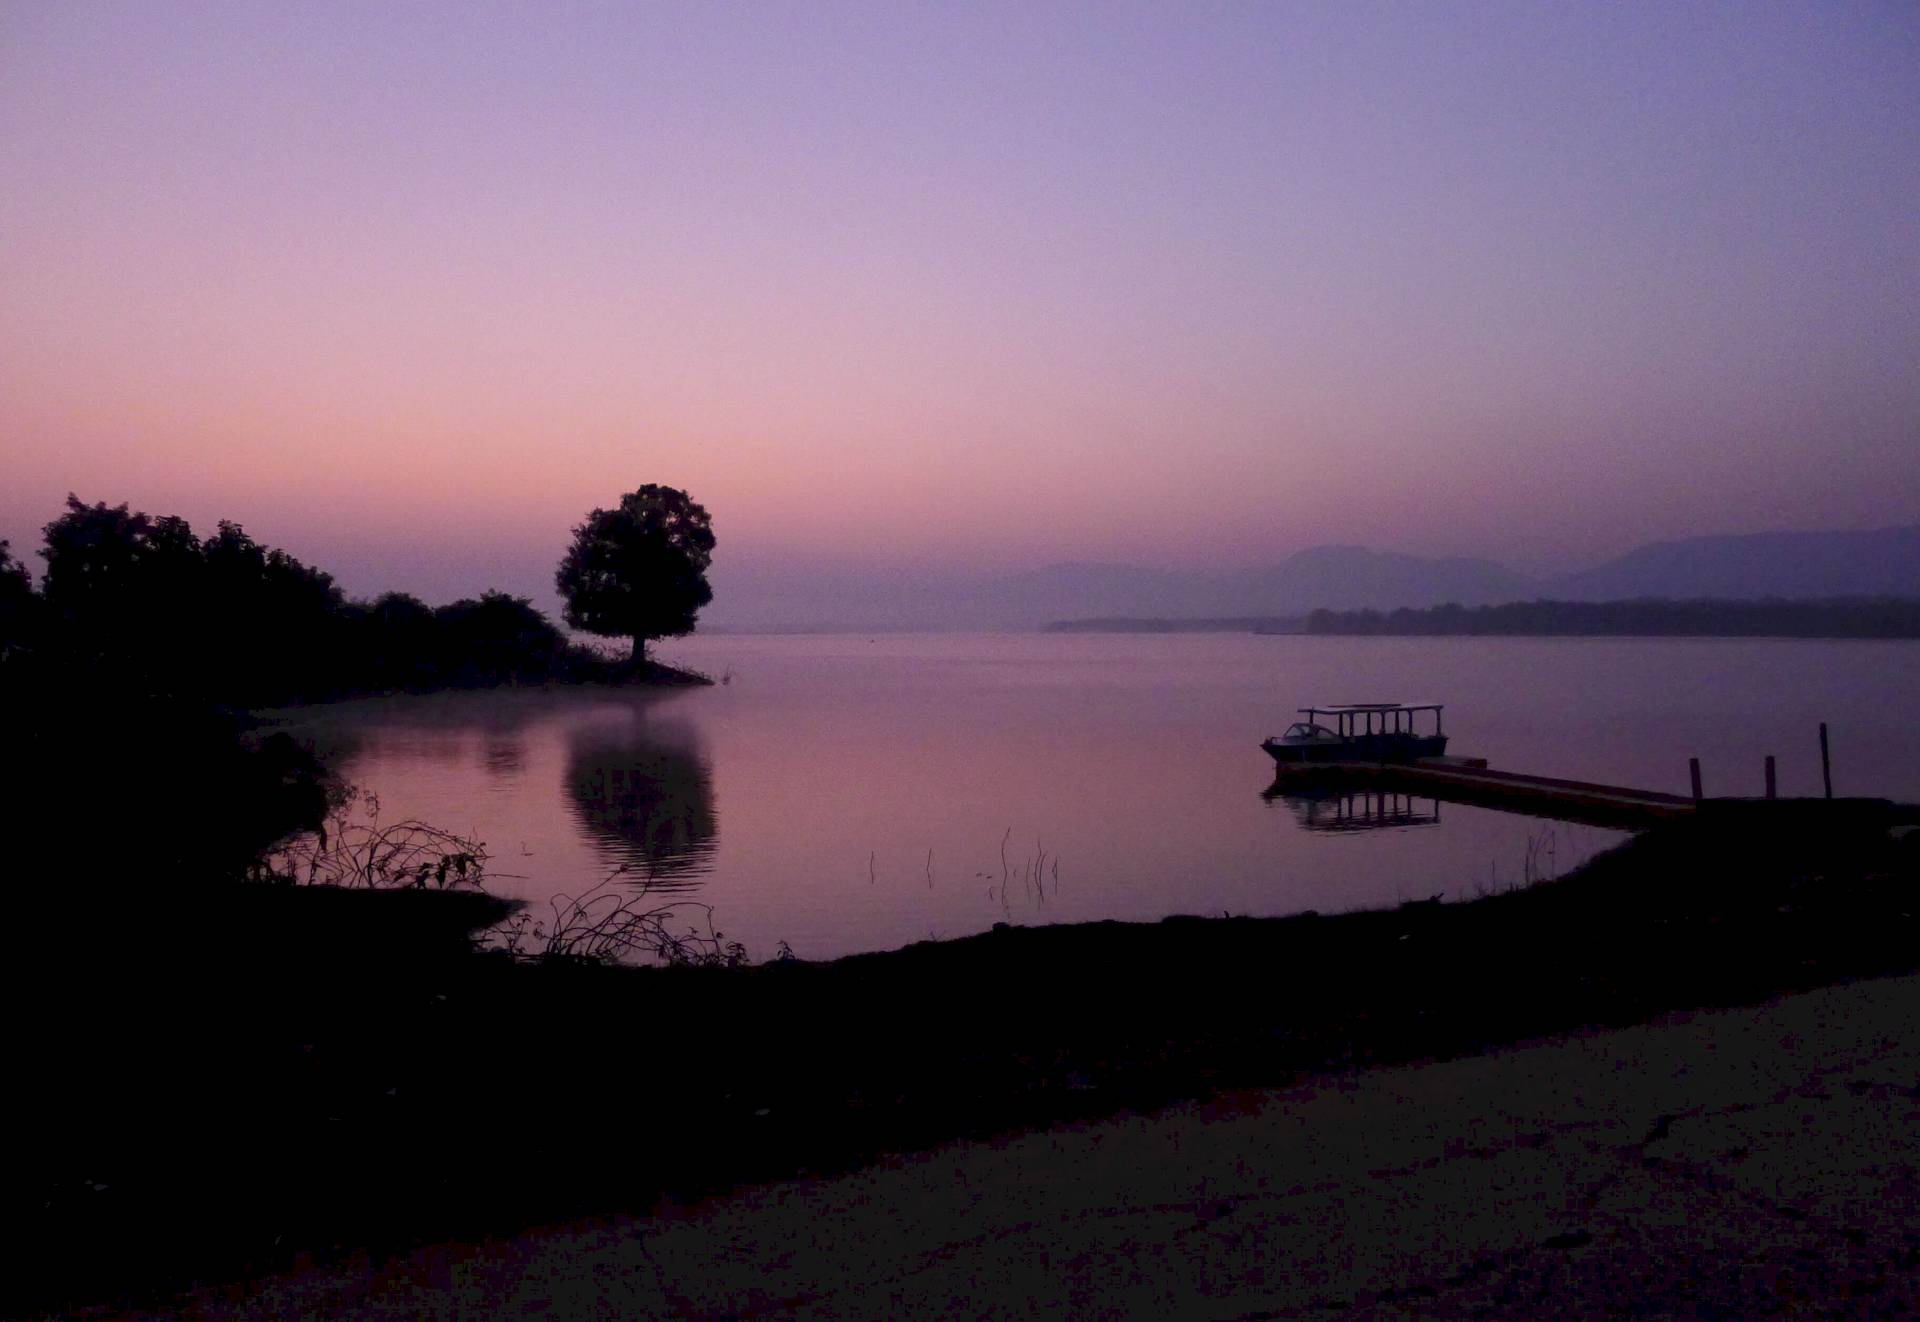 Satpura-National Park